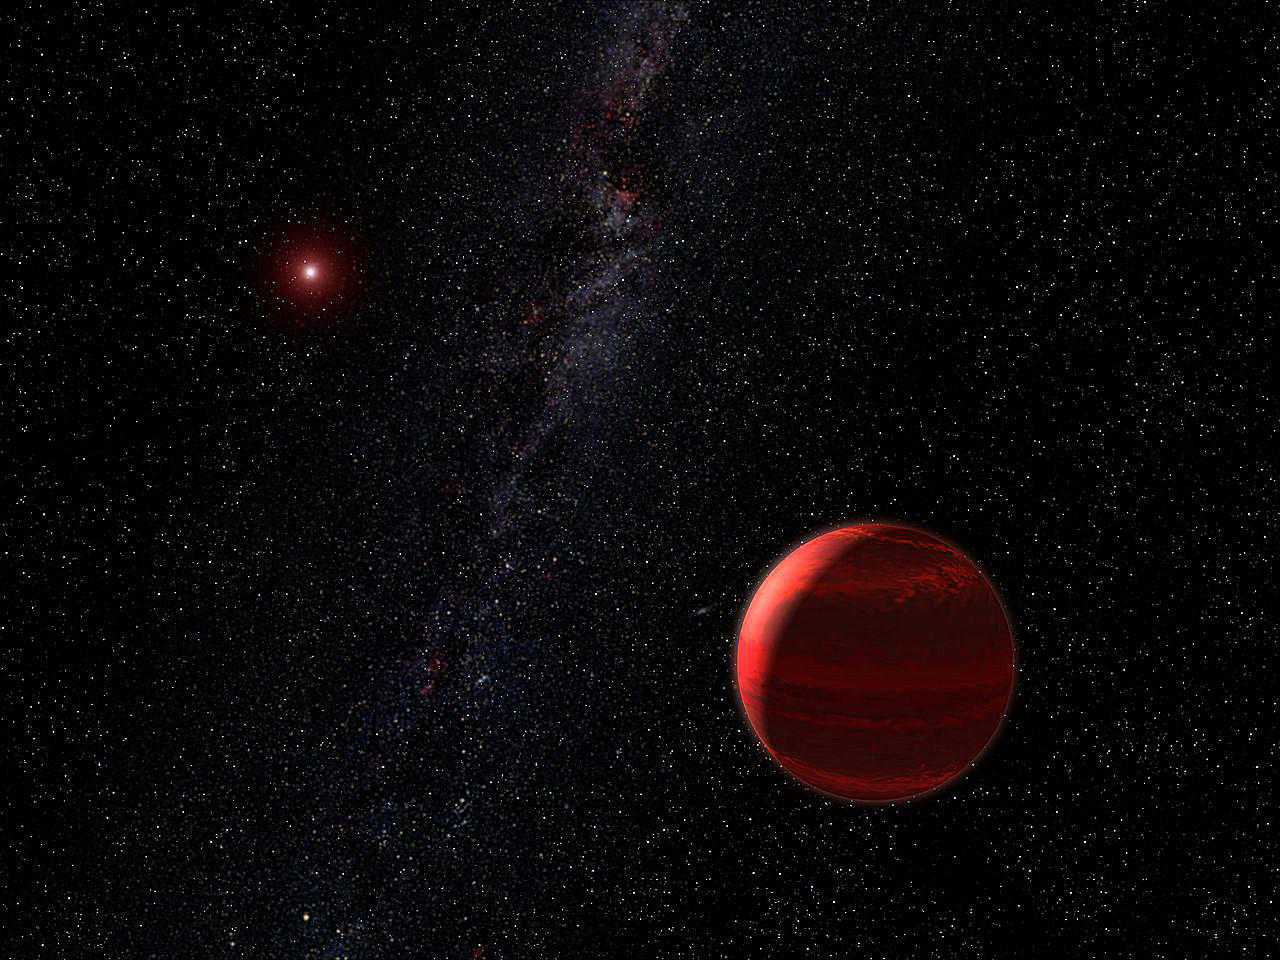 Artist rendering of a red dwarf star in space.